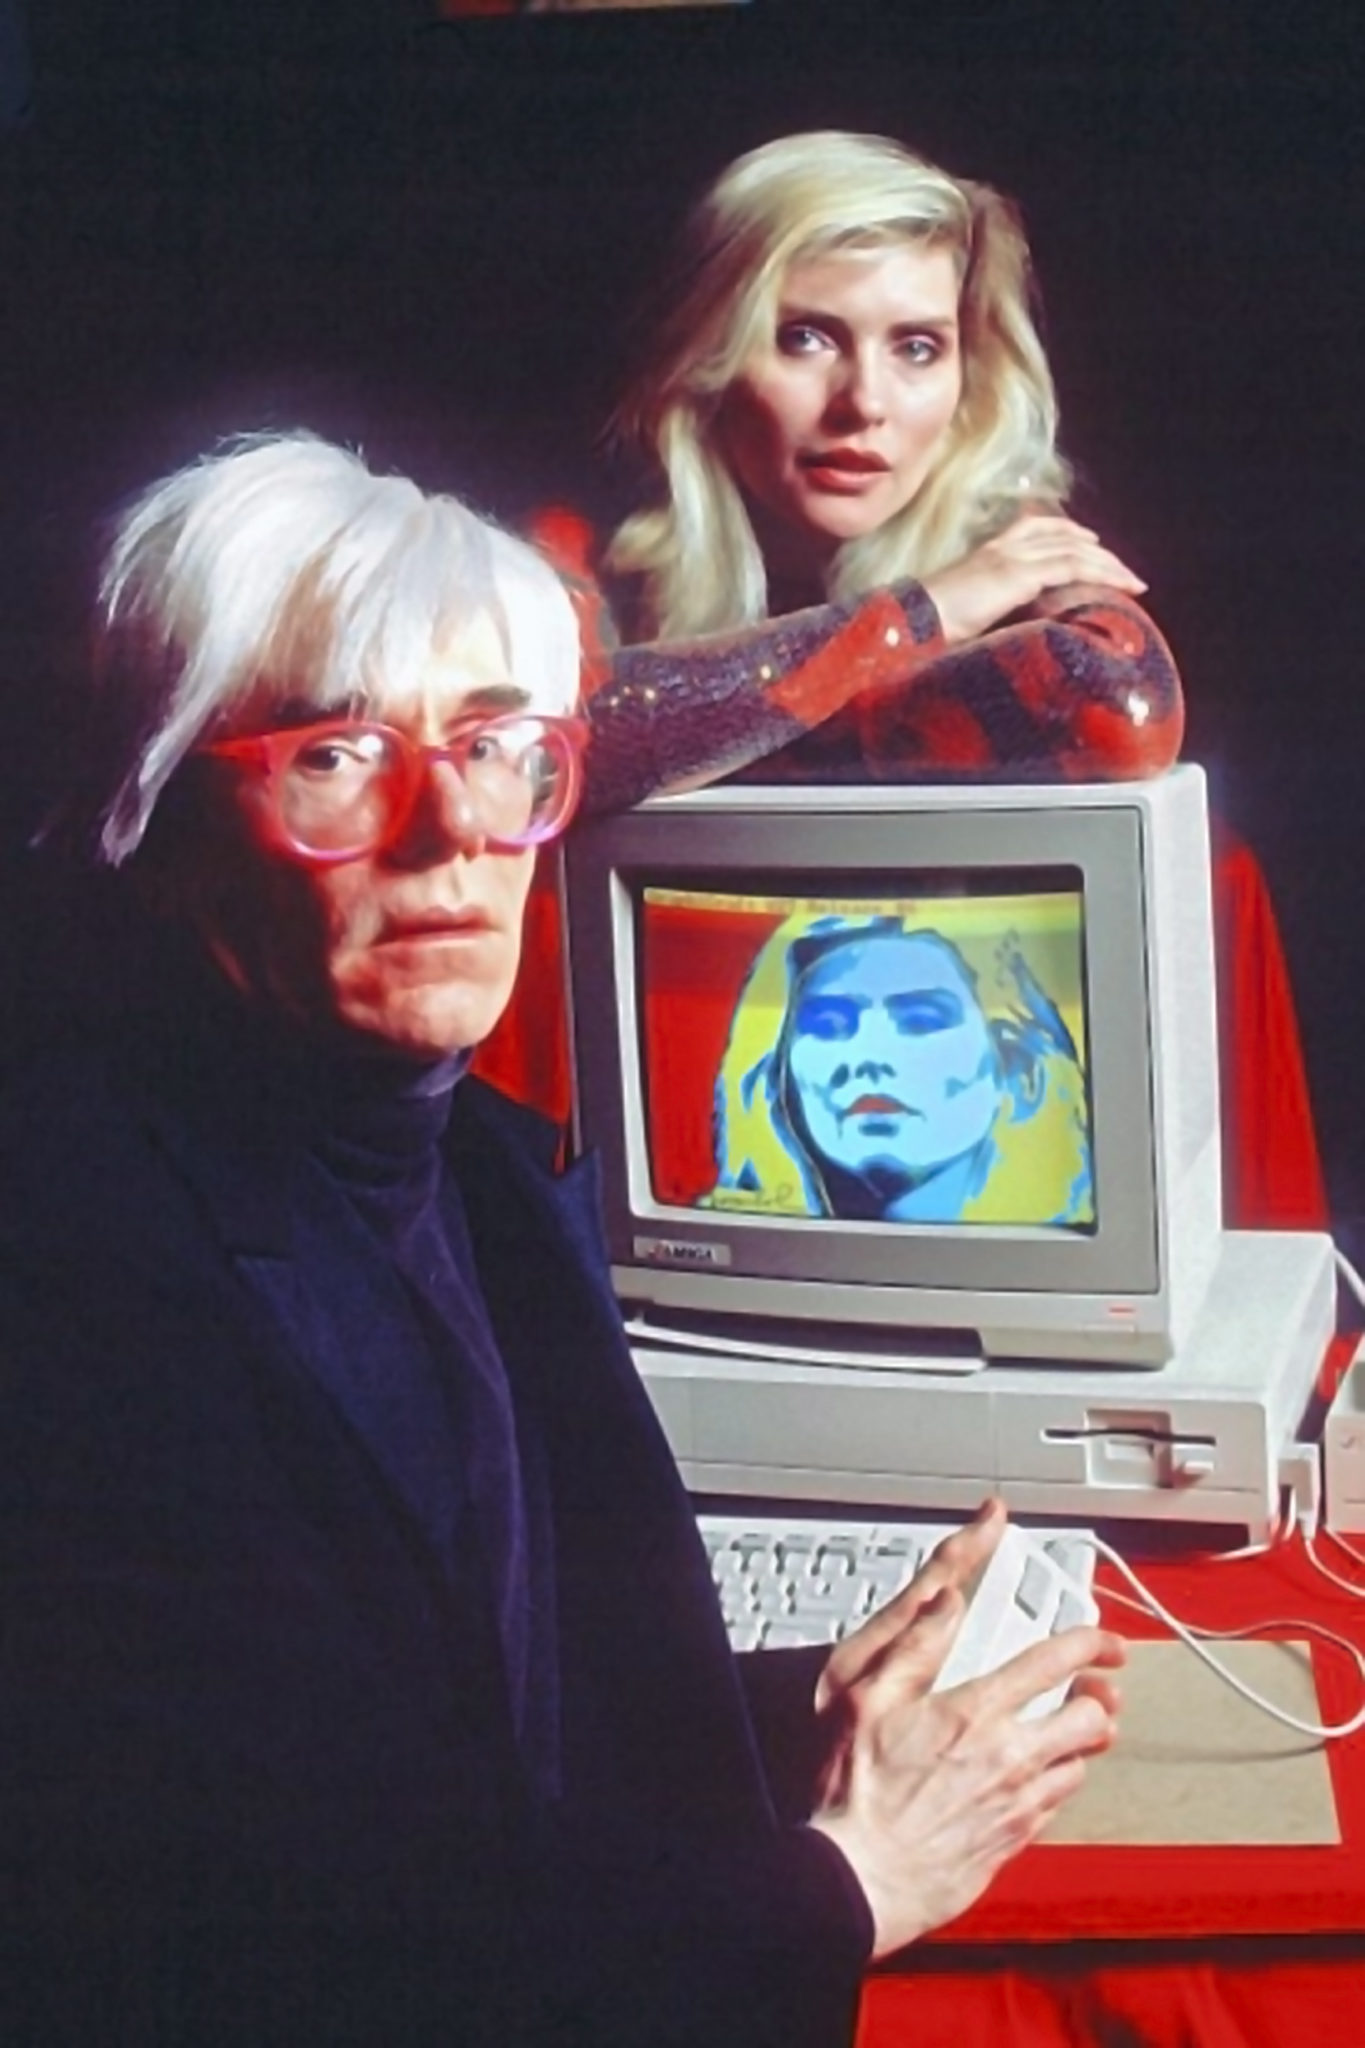 Andy Warhol e Debby Harry al Lincoln Center per la presentazione di Amiga 1000, 1985